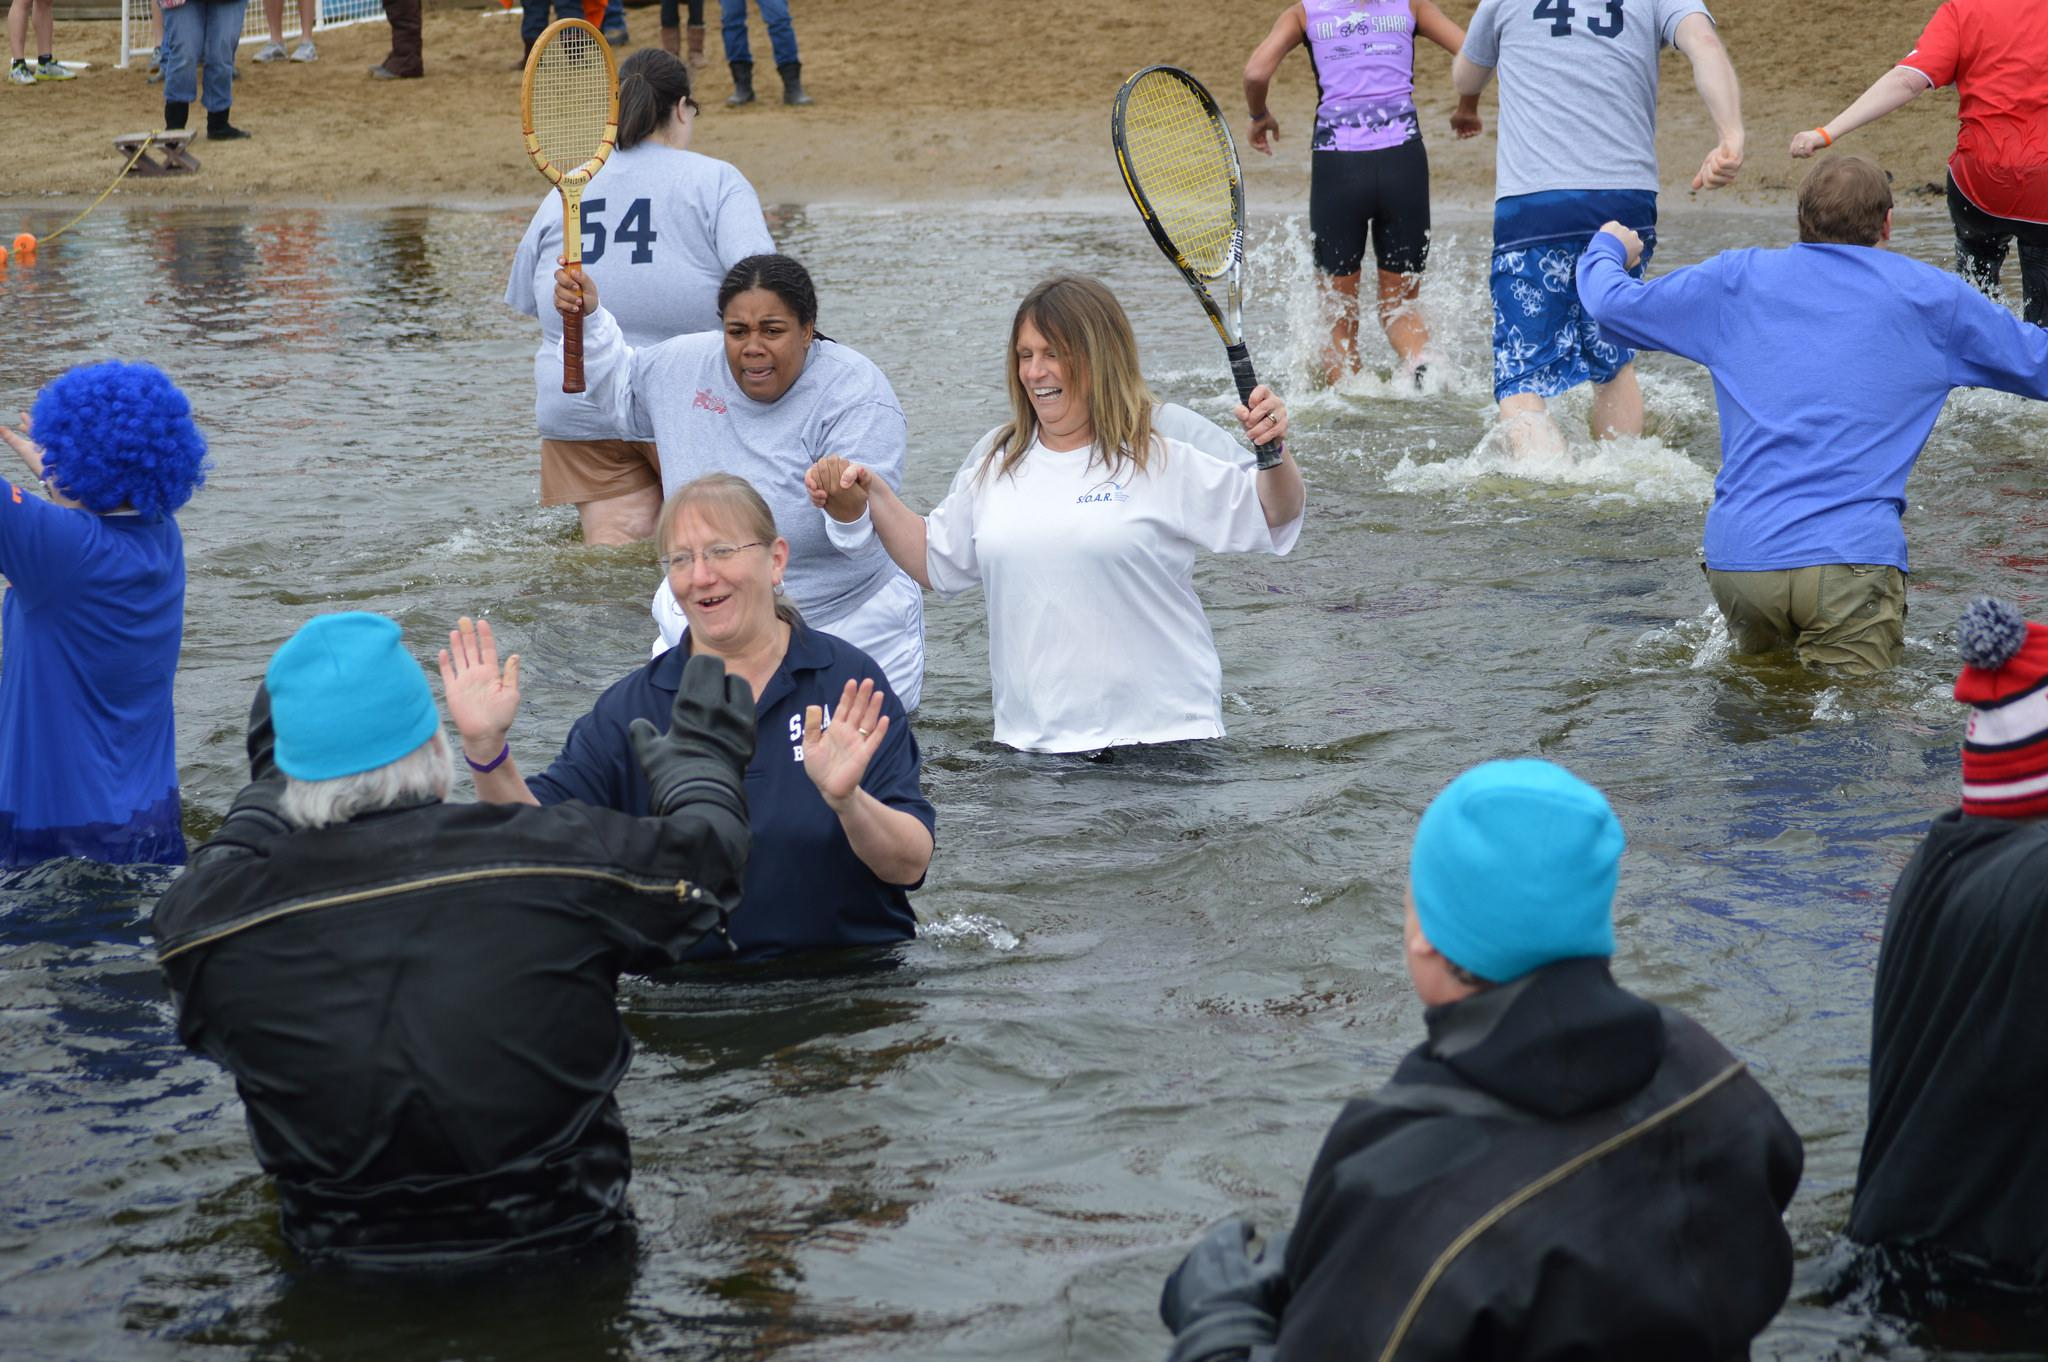 Dozens plunge into cold water raising money for Special Olympics